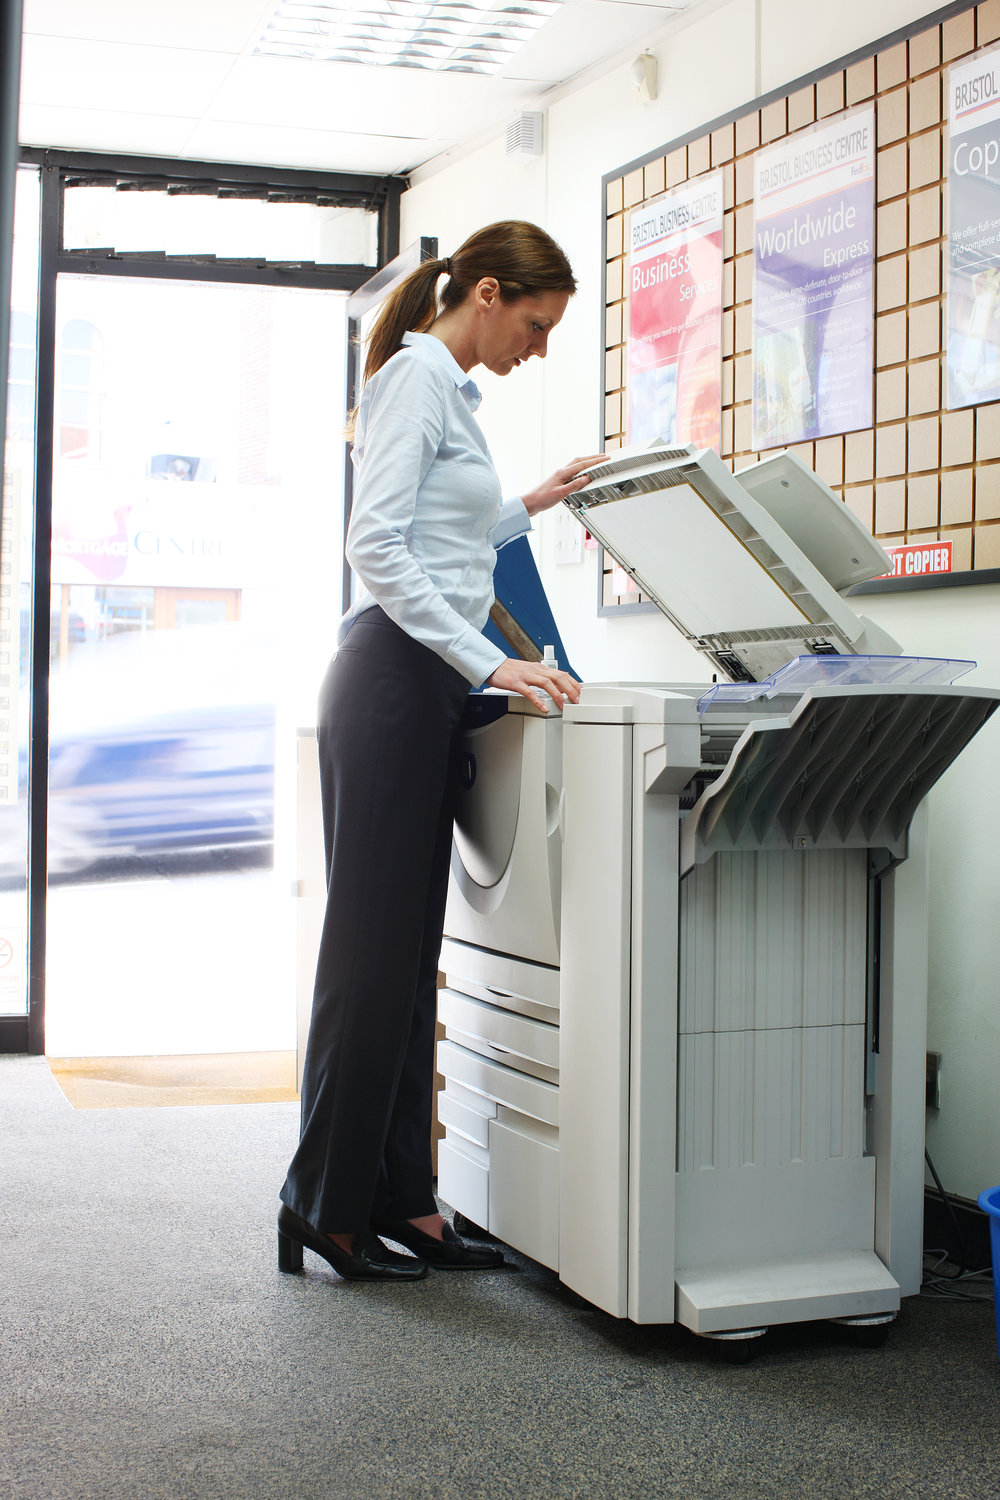 woman at copier.jpg